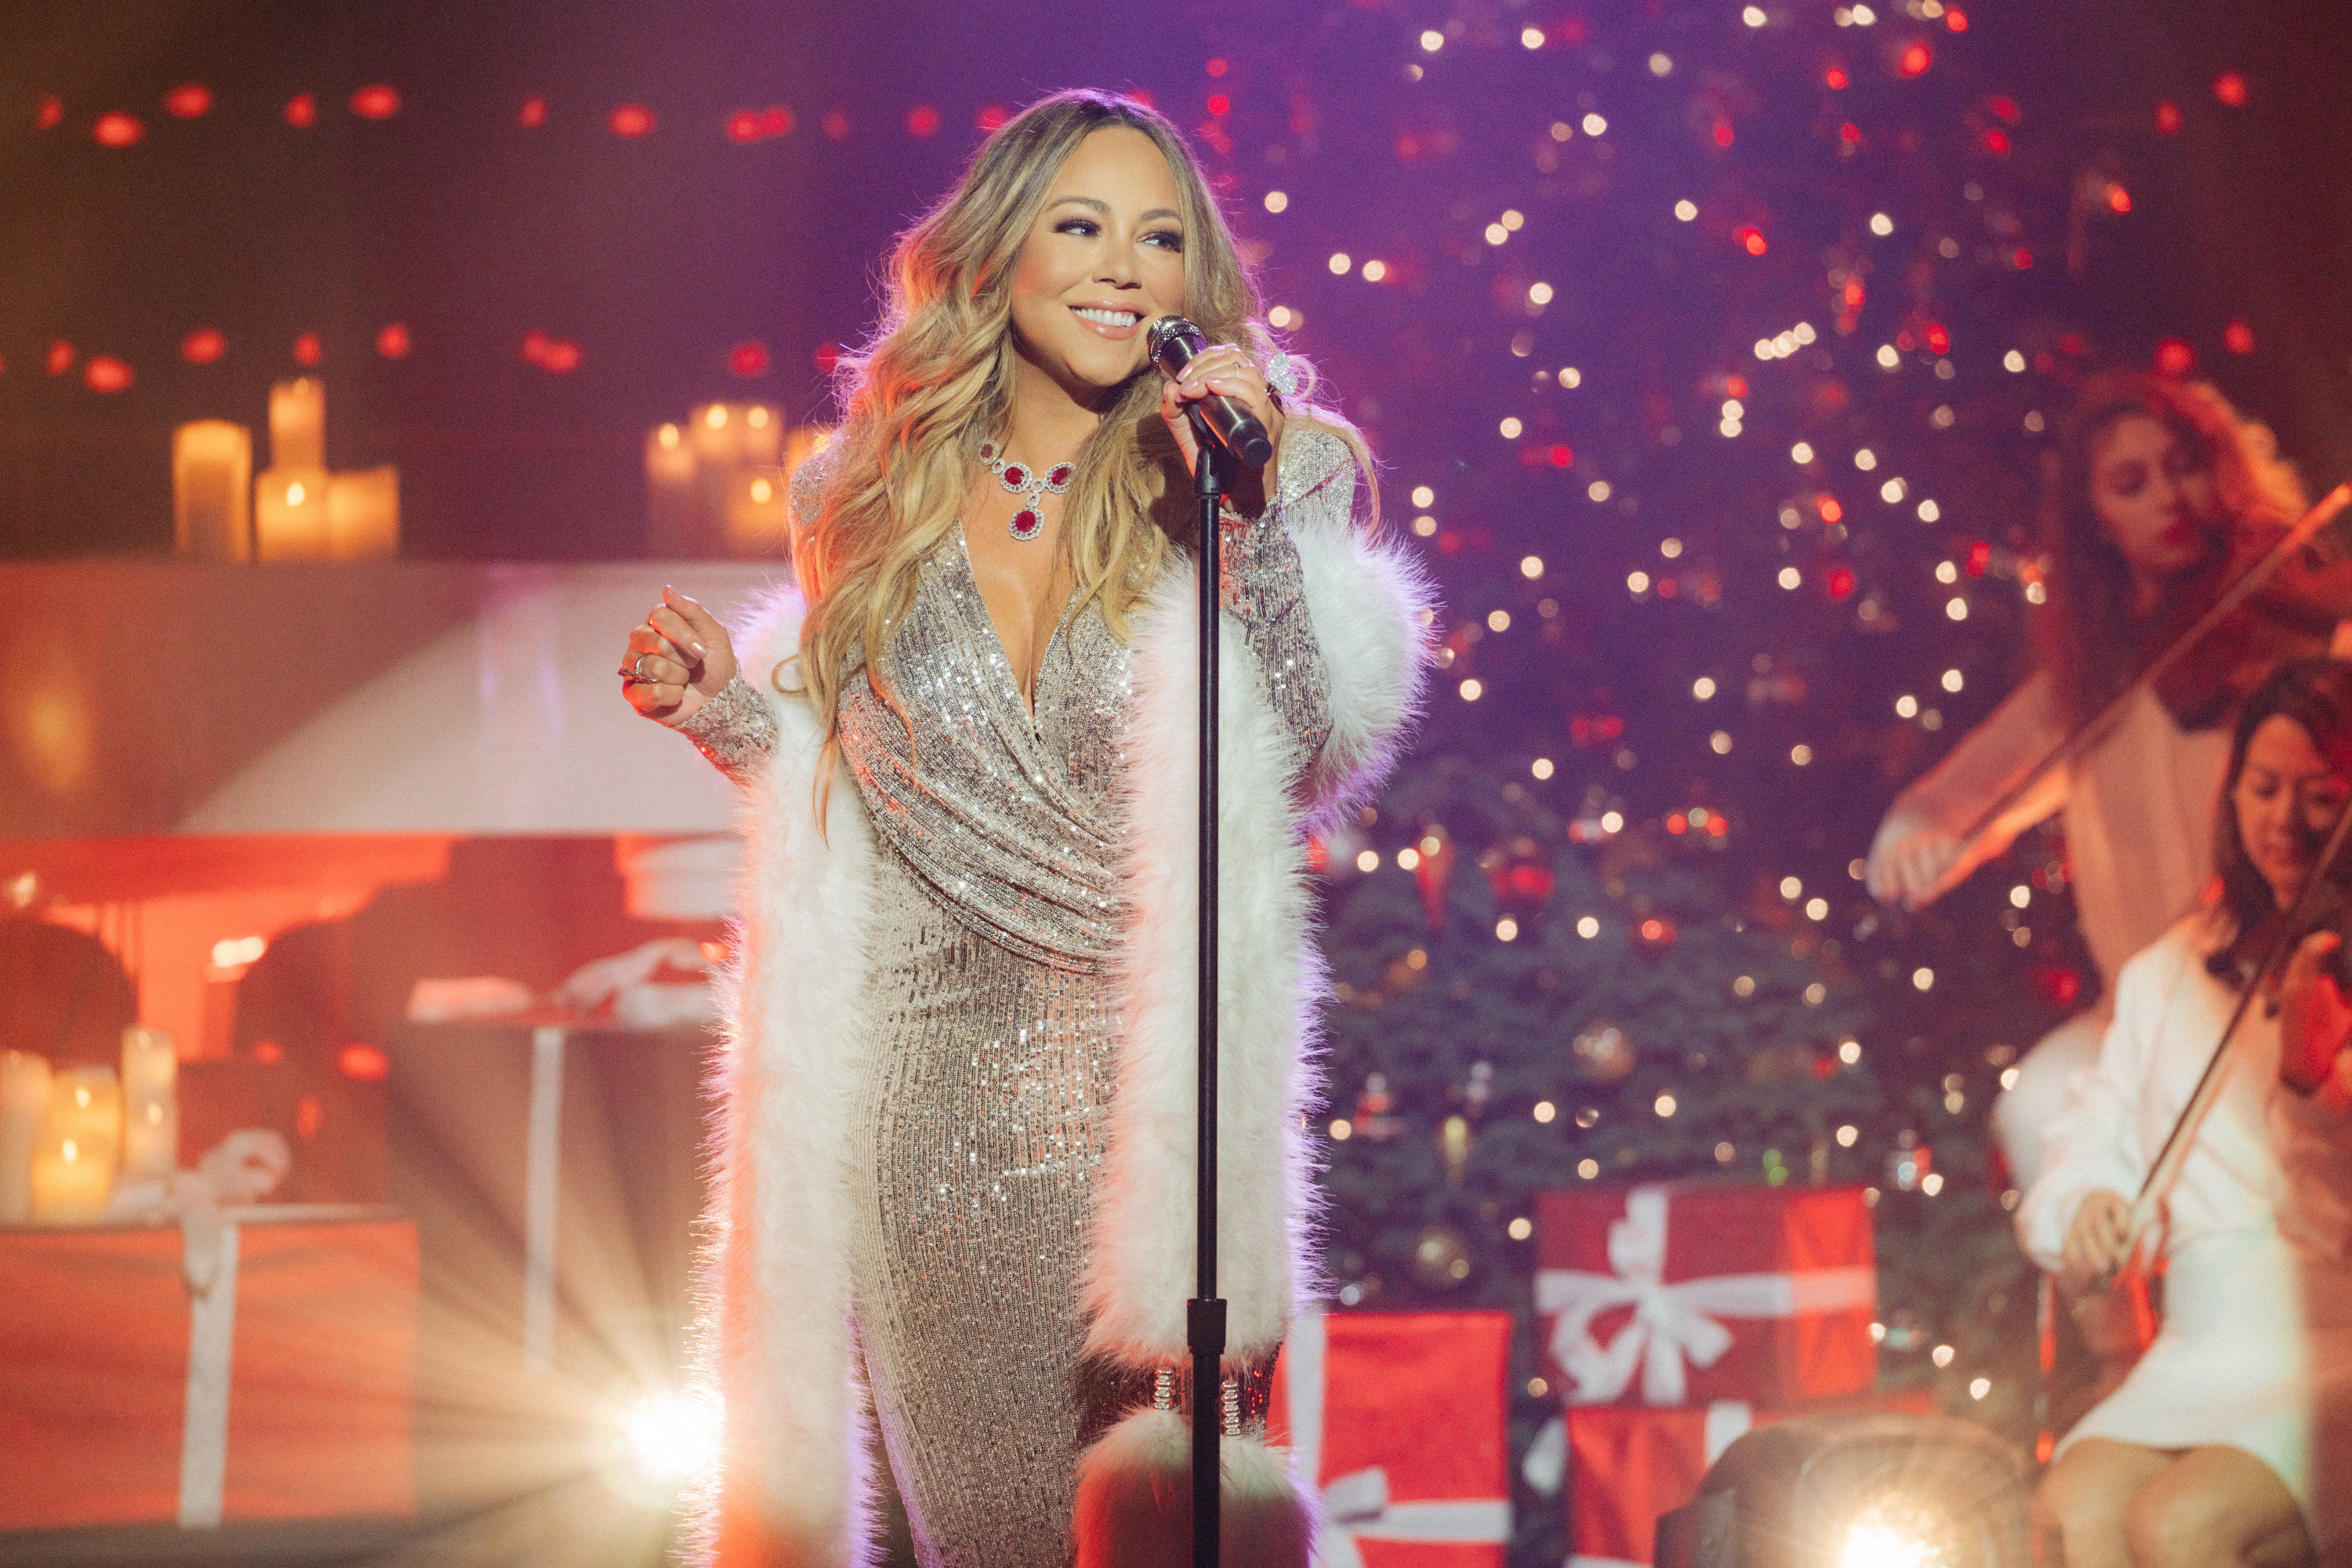 """Mariah Carey performs """"Christmas Time is in The Air"""" from her 25th Anniversary album reissue of Merry Christmas during The Late Late Show with James Corden, airing Wednesday, December 18, 2019"""